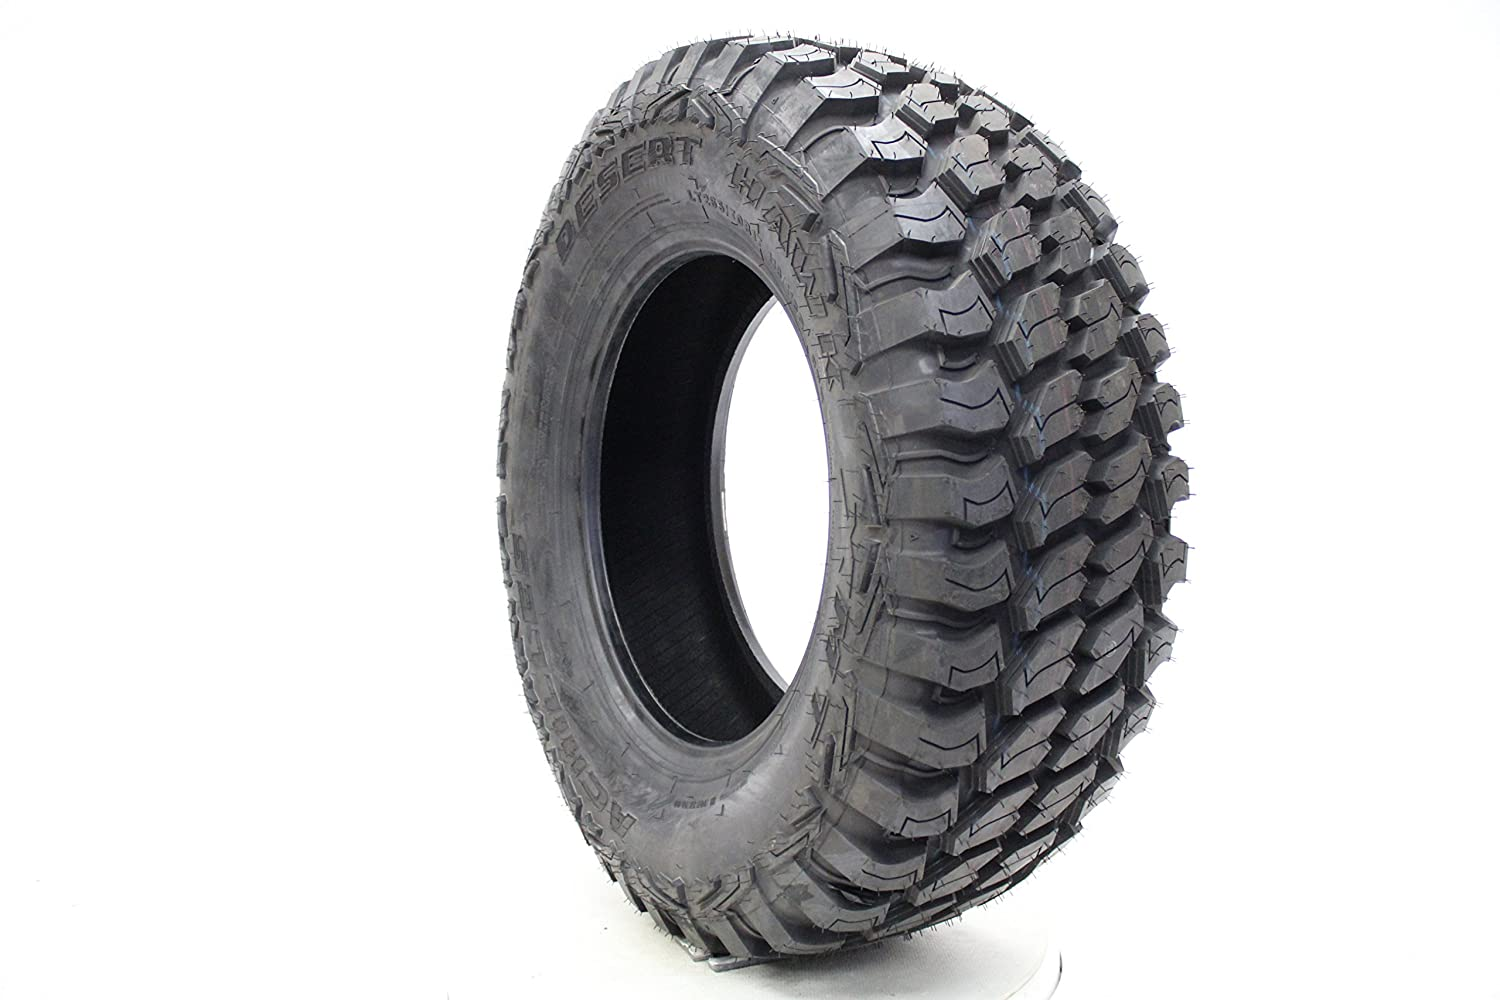 Achilles Desert Hawk X-MT All-Terrain Radial Tire - 30/9.50R15 104Q MAO309515